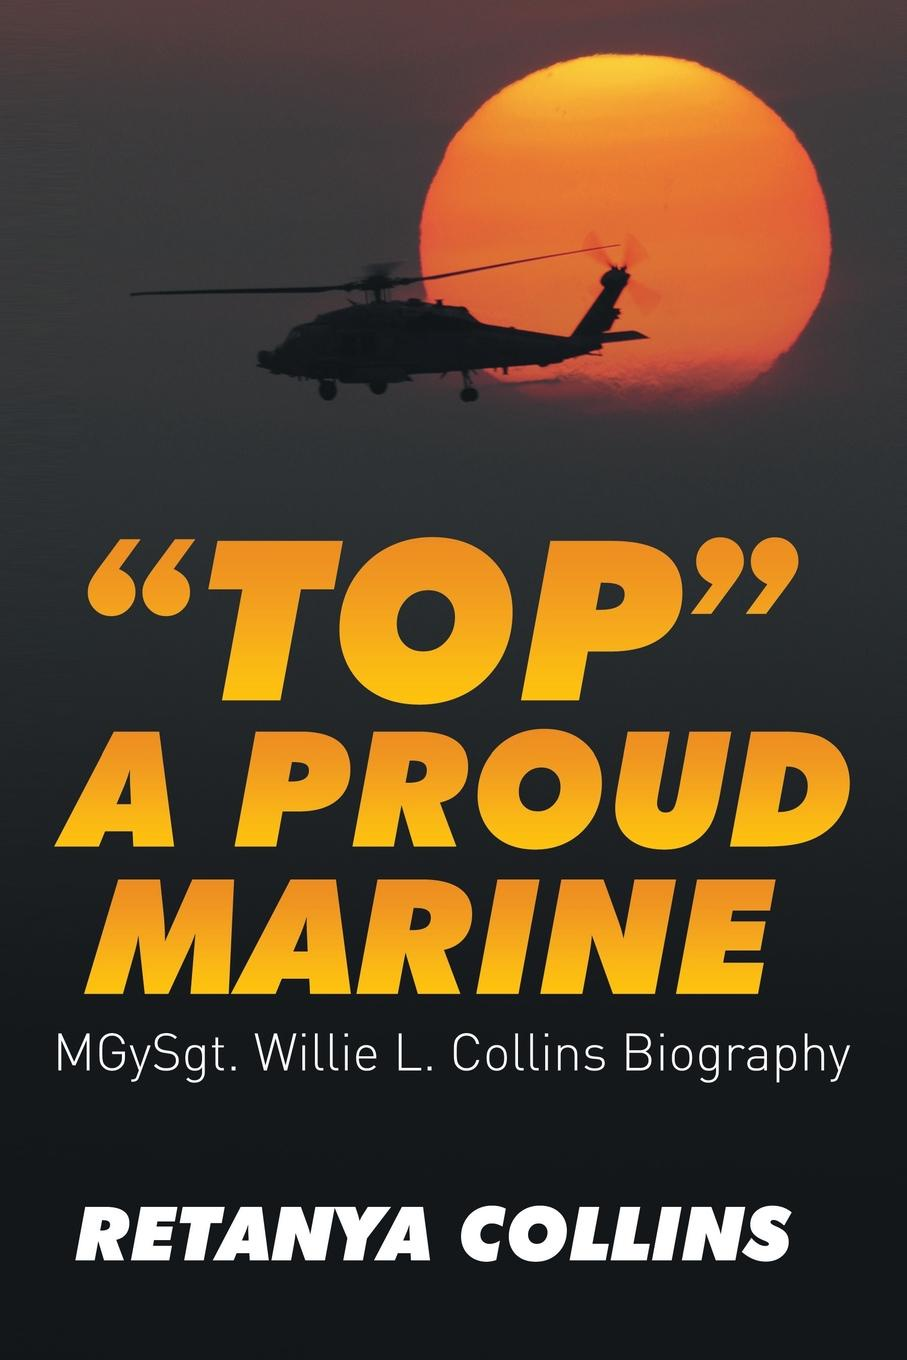 Retanya Collins Top a Proud Marine. MSgt. Willie L. Collins Biography